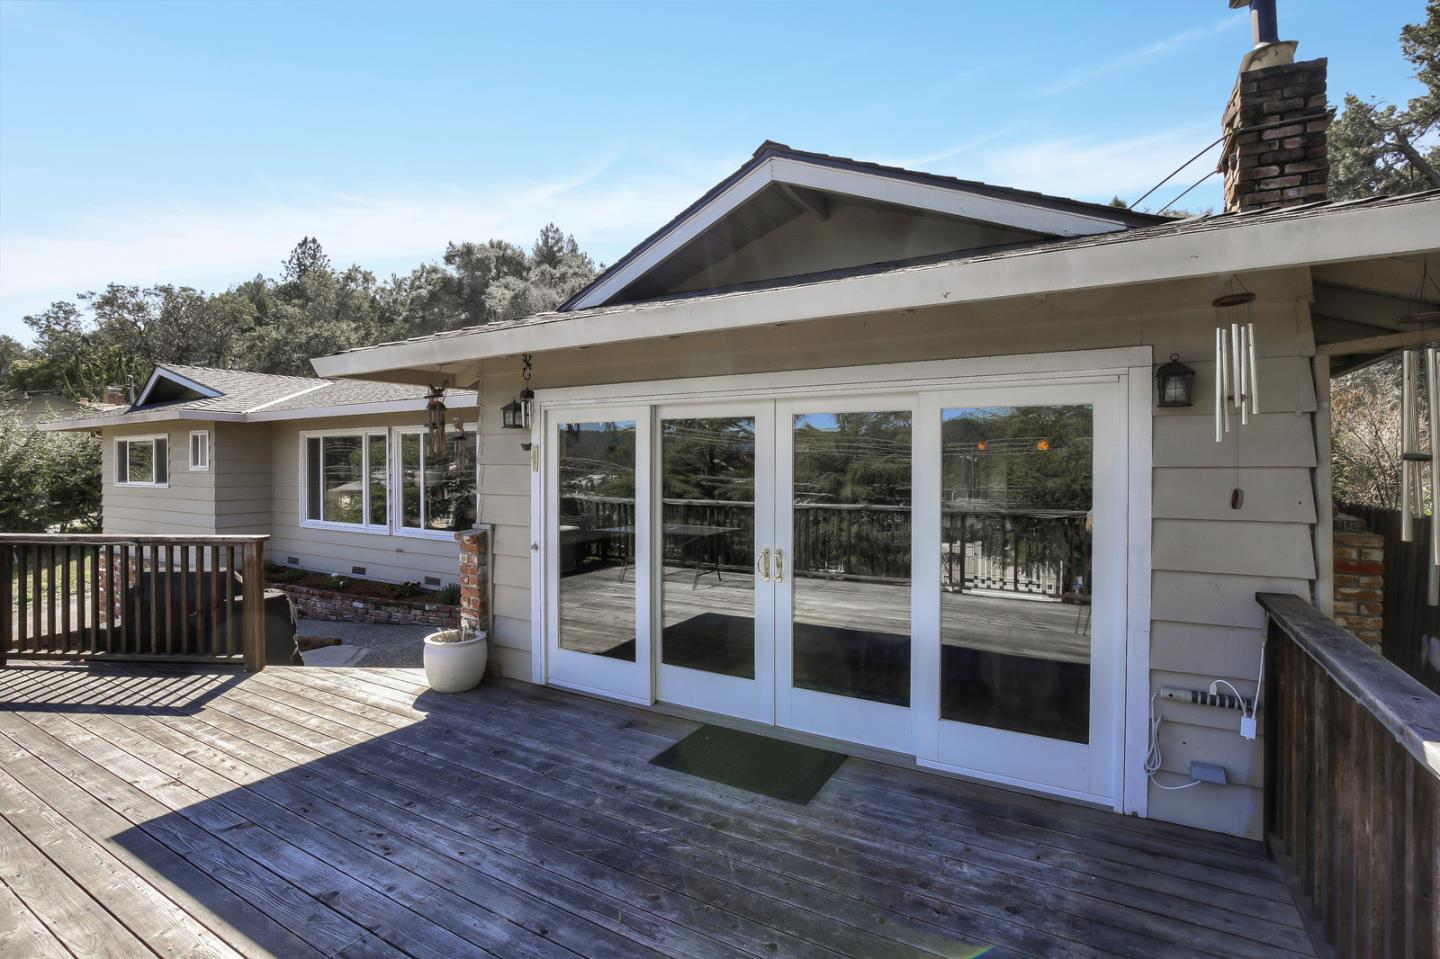 Beautiful updated Scotts Valley single level home with a spacious bonus family room that could easily be used as a 4th bedroom without a closet but lots of room to add one.  The home has been well maintained with a gorgeous updated kitchen with 5 burner gas cooktop, double ovens. stainless appliances, granite counters, and a breakfast bar.  The dining area looks out over Scotts Valley with a beautiful large deck for entertaining and BBQing.  The grand living room has vaulted ceilings and large view windows. The master bedroom suite is a relaxing oasis with a remodeled bathroom featuring granite and hand-hewn marble, a sumptuous soaking tub and large vanity w/ double sinks. Indoor laundry, pantry, updated vinyl windows, furnace and AC replaced in 2012 plus oak and bamboo floors. Large 2 car garage good sized w/ new garage door.  Plenty of off street parking on this very generous sized lot.  Enjoy walking to Scotts Valley shopping,  parks and festivals from this beautiful home.